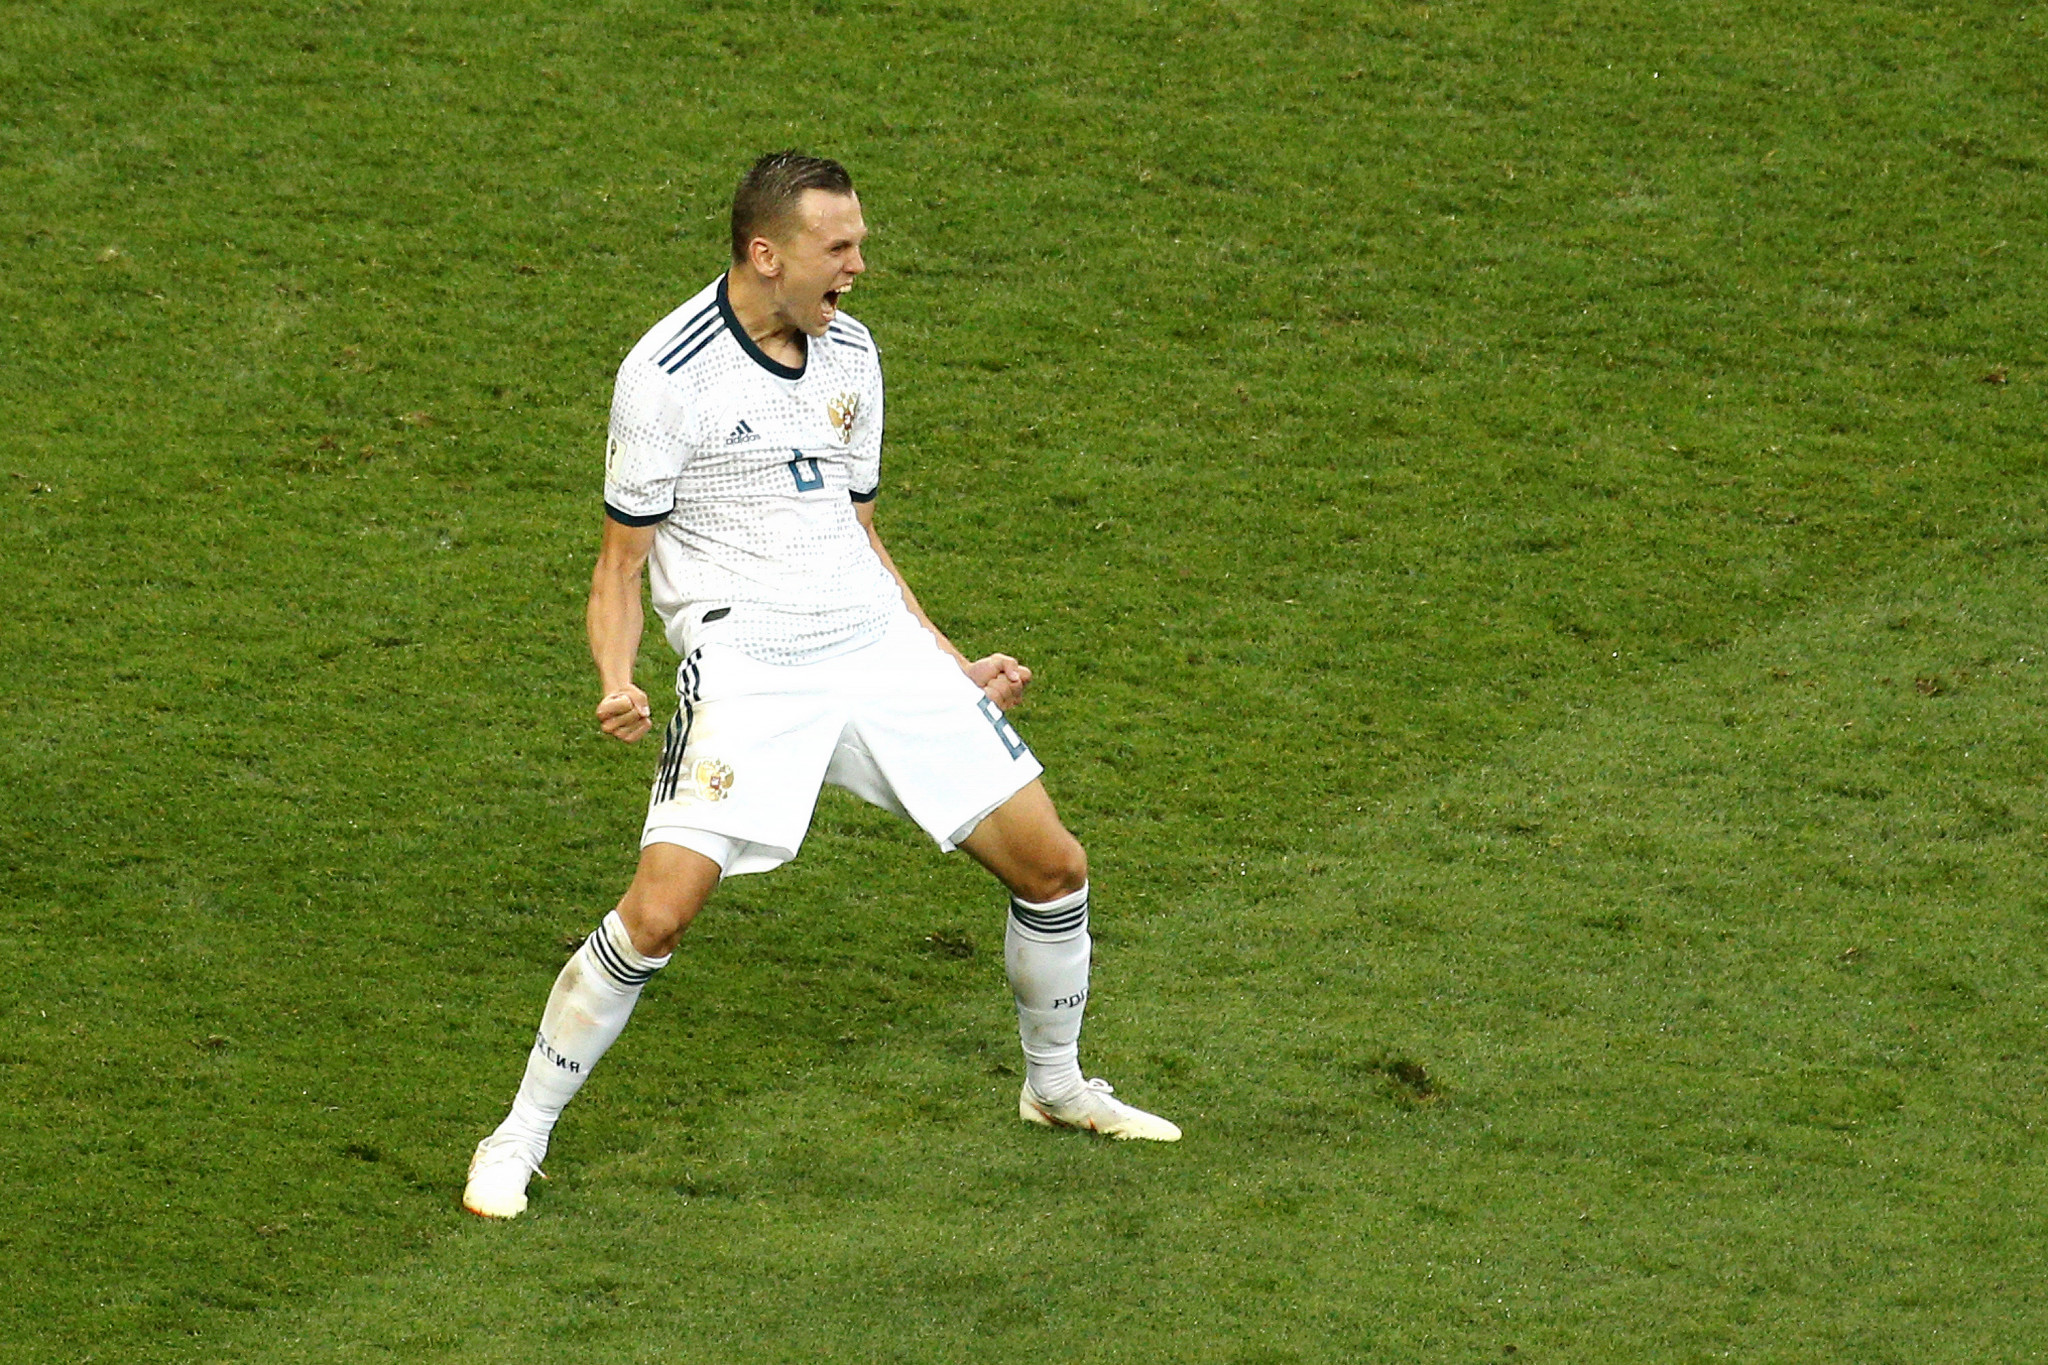 Denis Cheryshev came on a substitute and scored one of Russia's penalties ©Getty Images